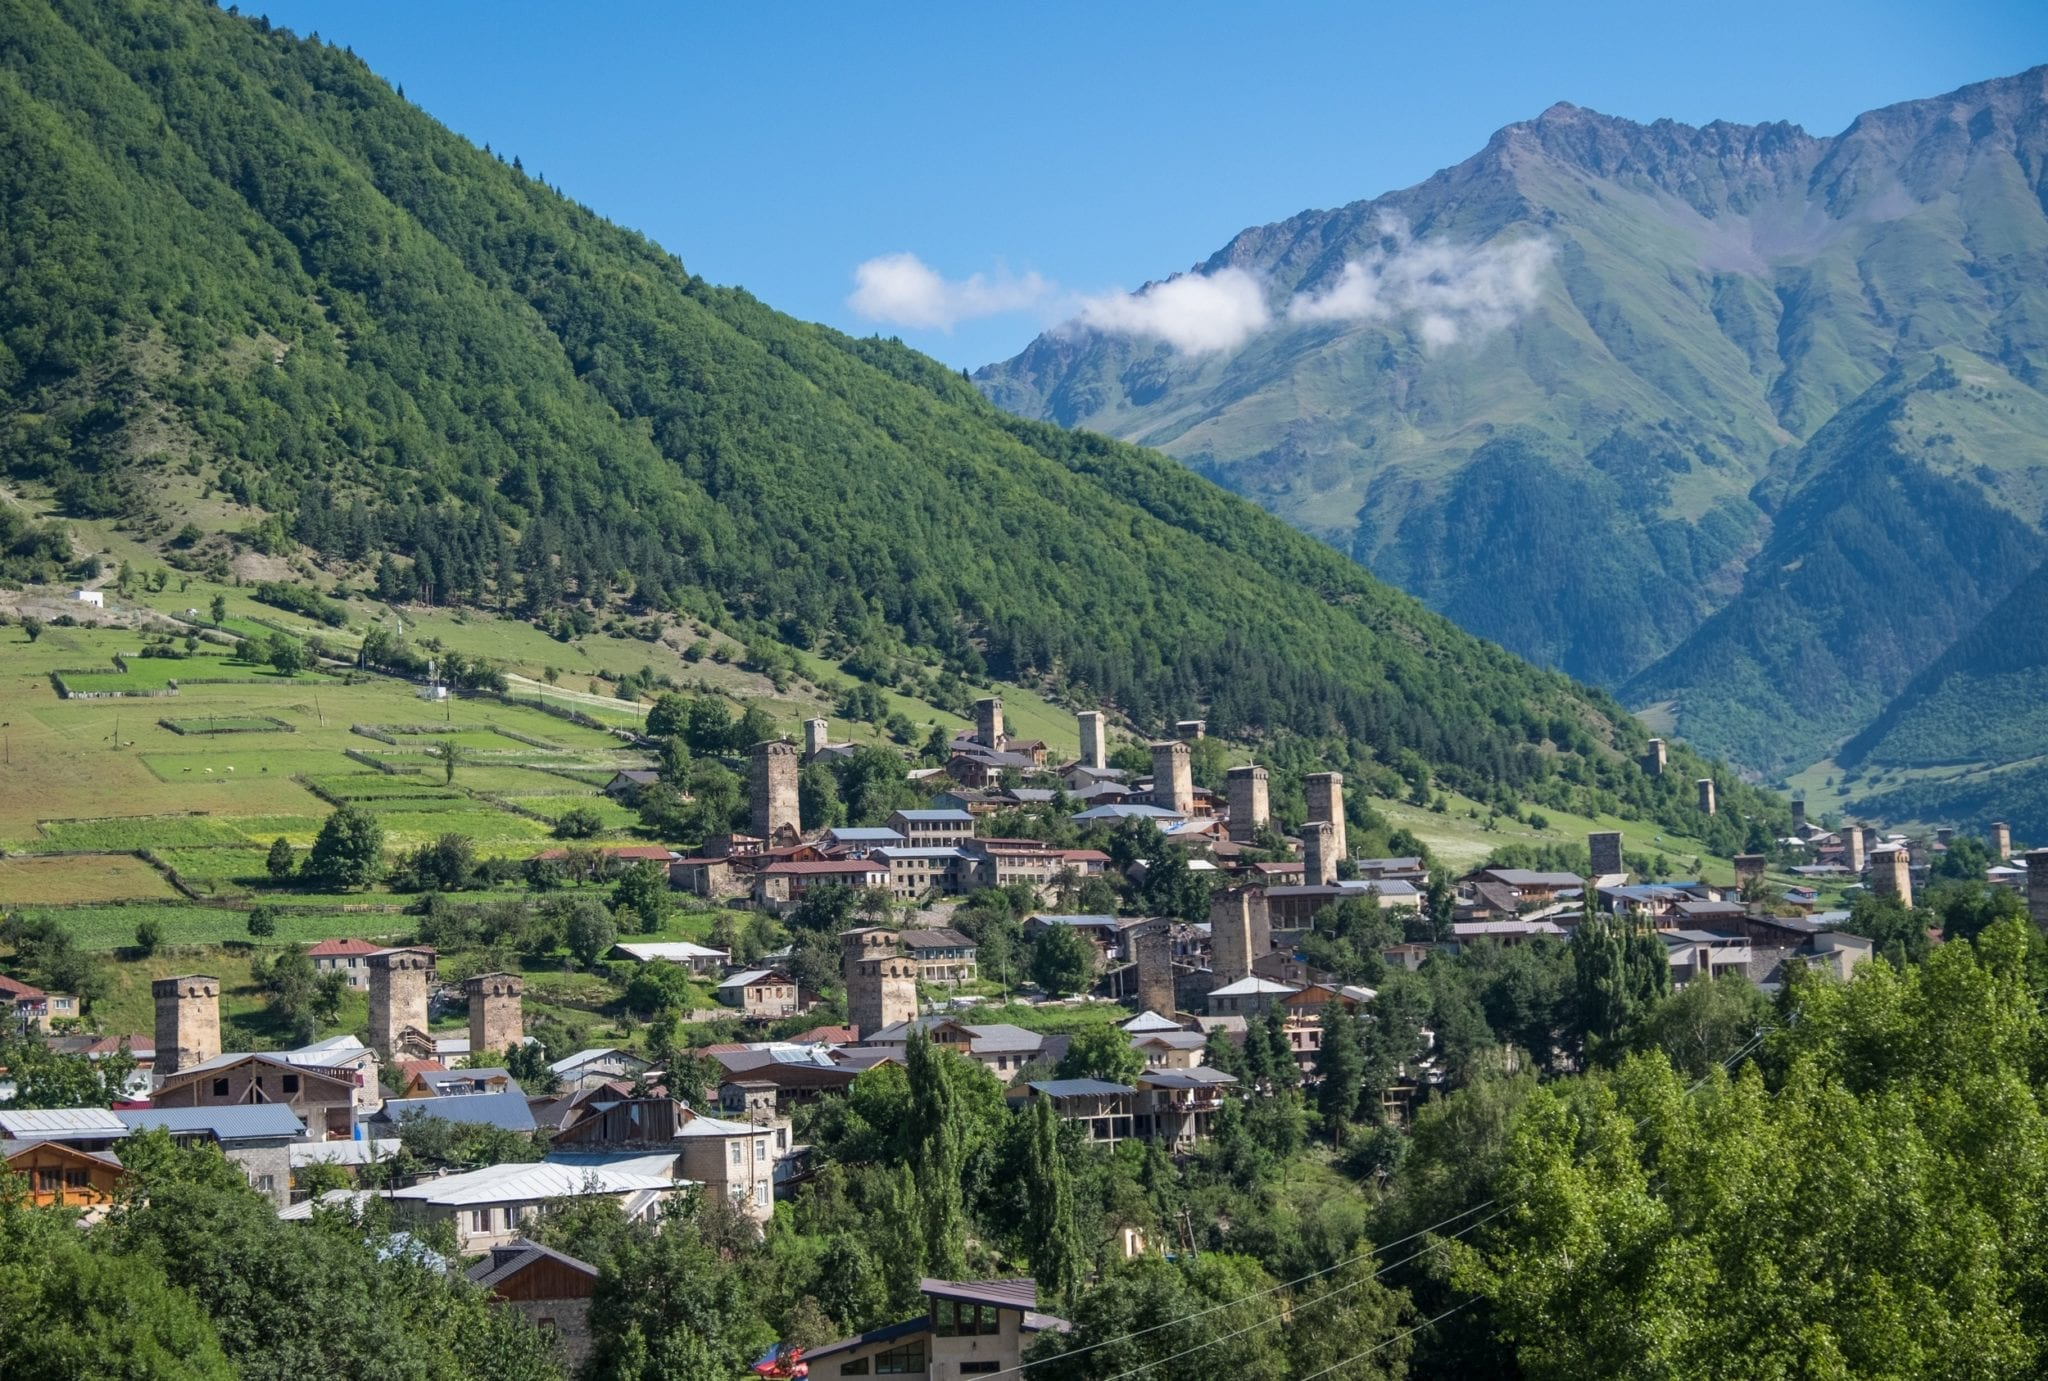 A village of stone towers in the foreground and mountains in the background in Mestia, Svaneti.